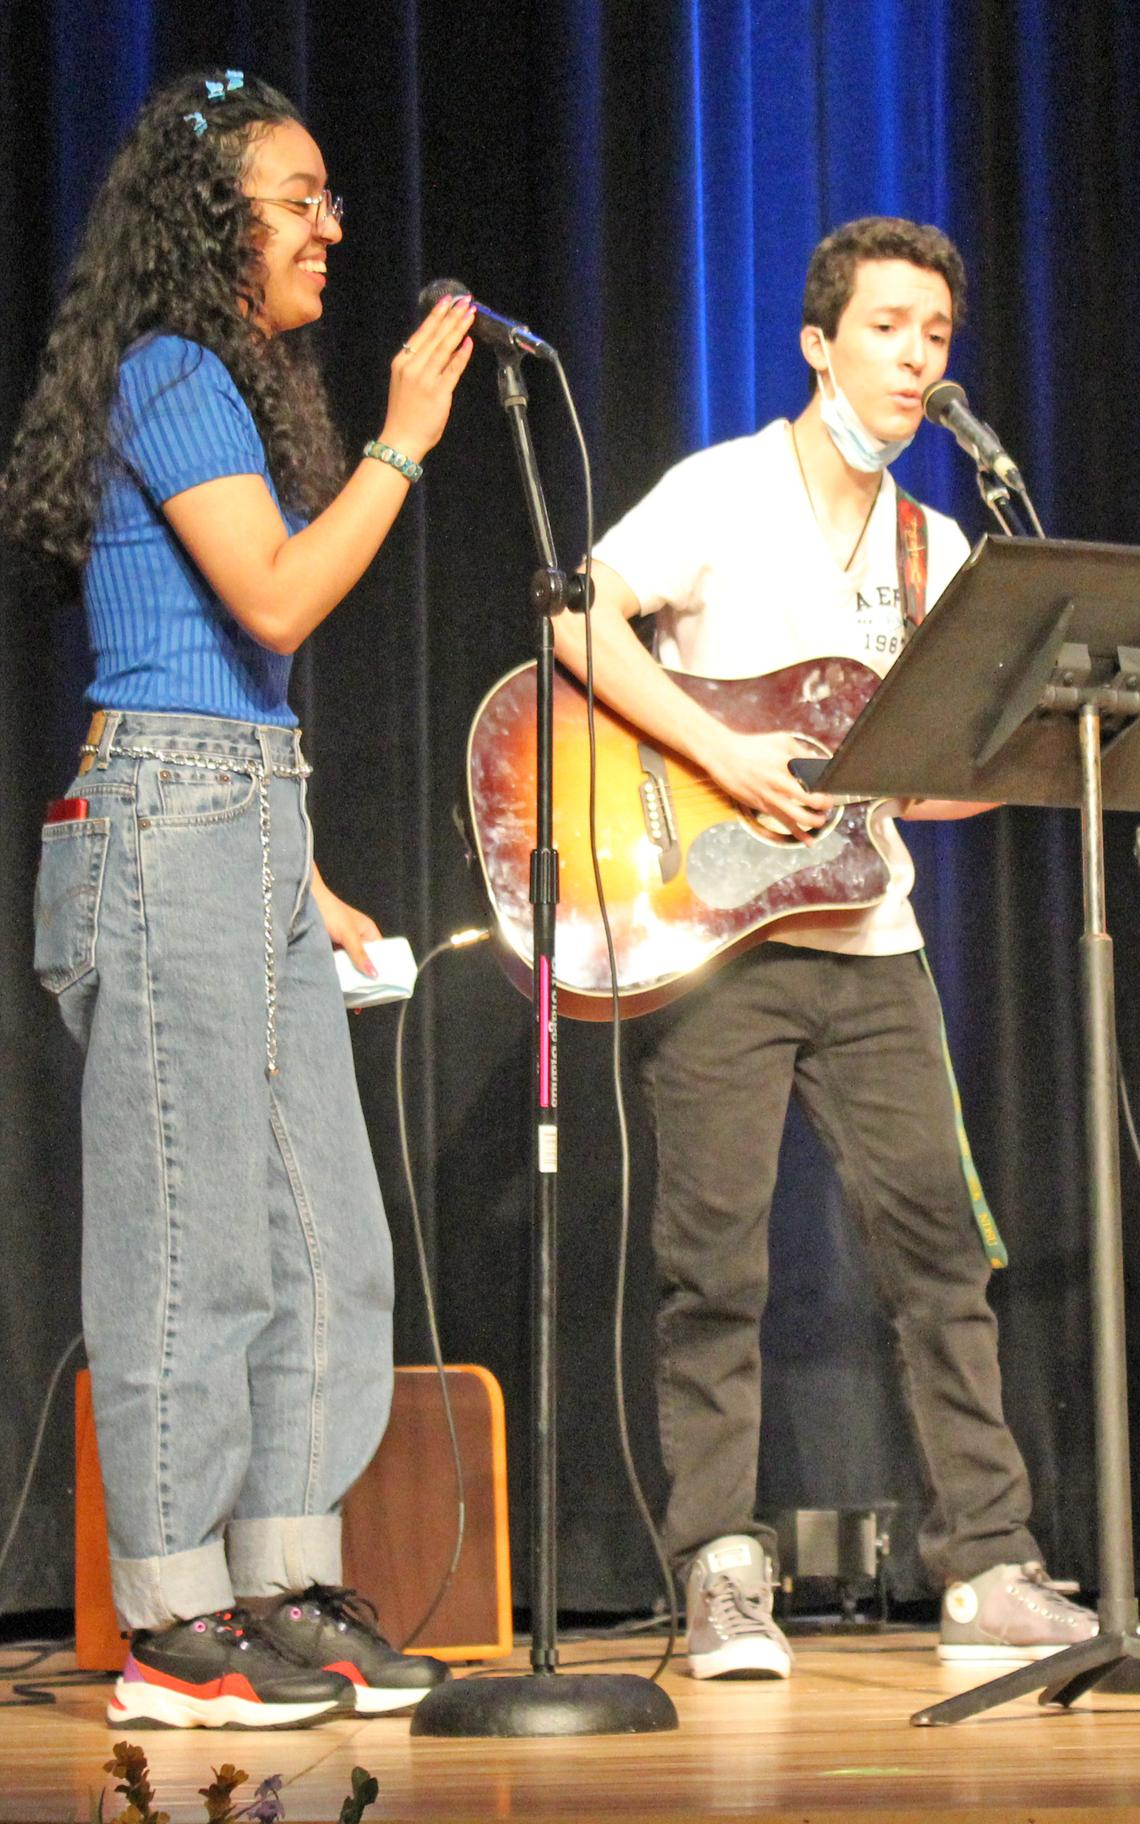 Siblings Evelyn and Alan Guajardo sing a duet during the Spring Fling coronation ceremony. (Robin Fish/Enterprise, March 29, 2021)